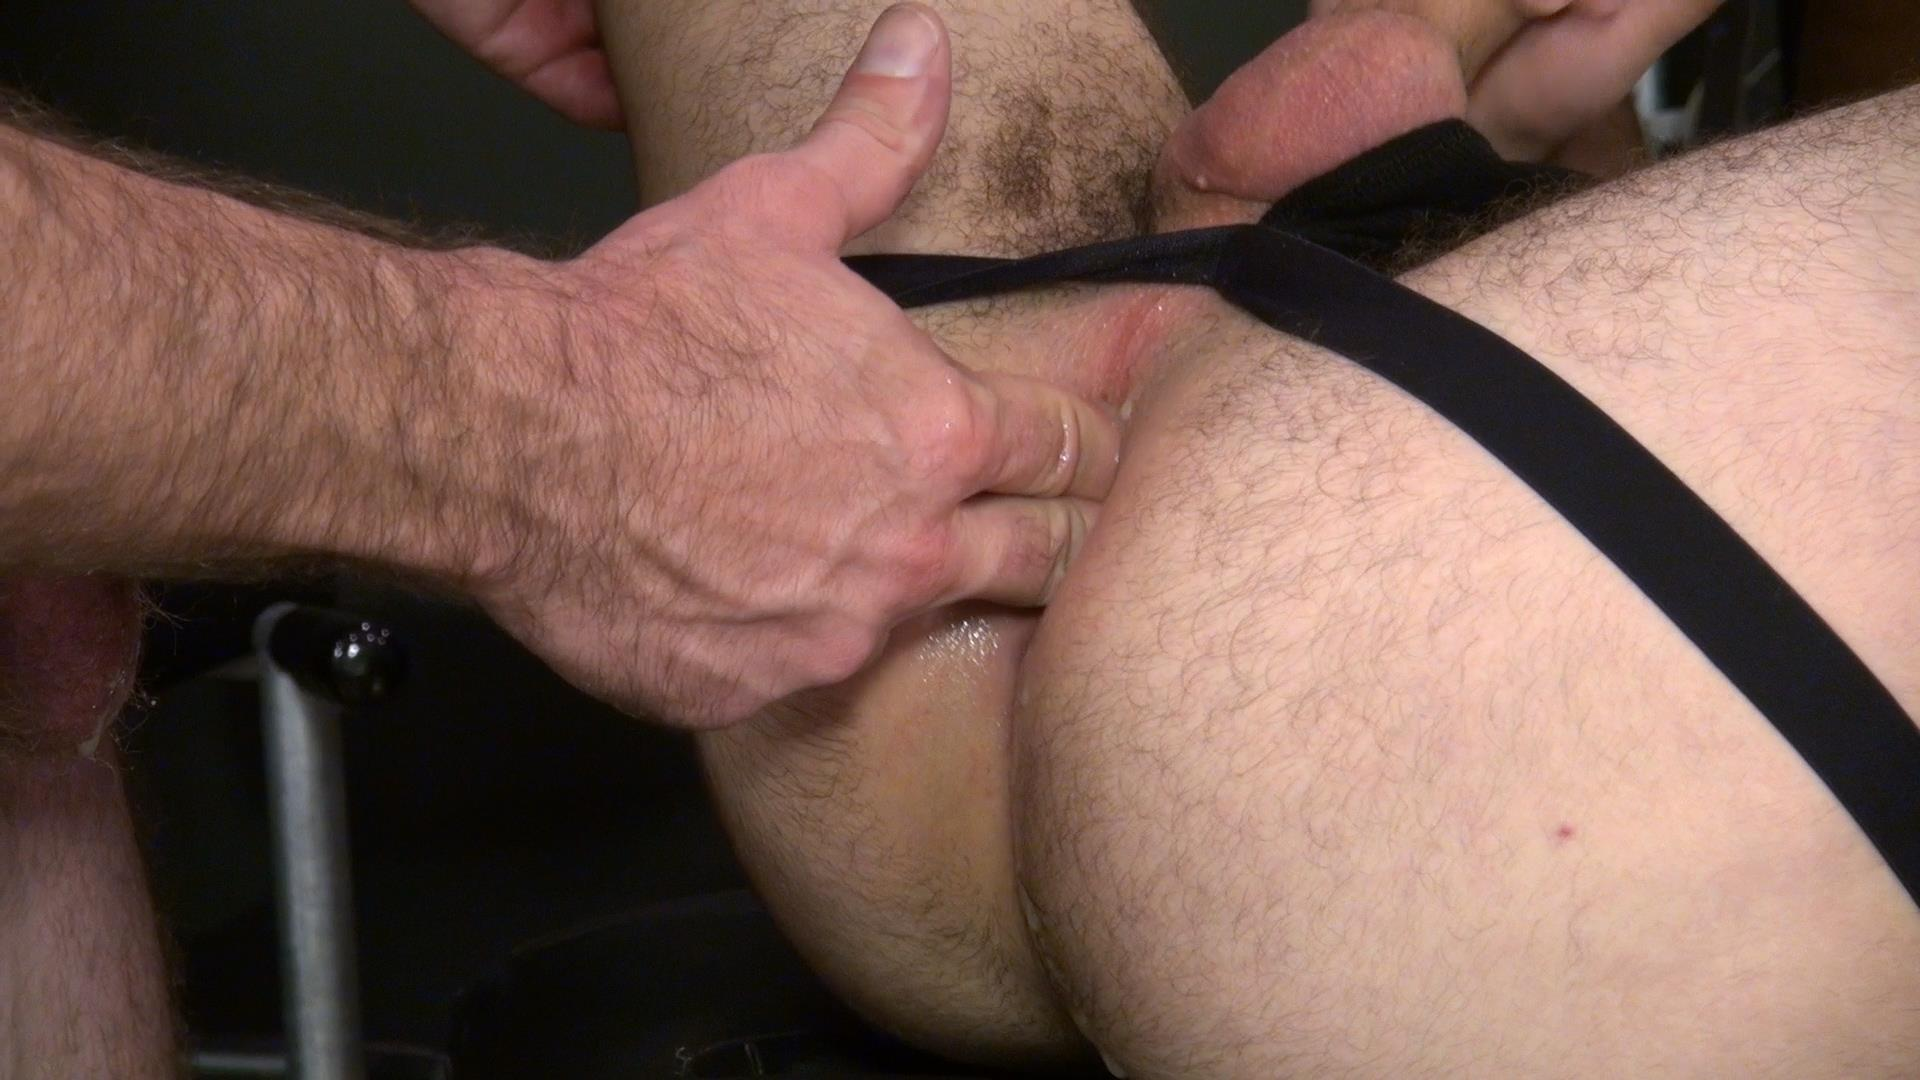 Raw-and-Rough-Jake-Wetmore-and-Dusty-Williams-and-Kid-Satyr-Bareback-Taking-Raw-Daddy-Loads-Cum-Amateur-Gay-Porn-07 Hairy Pup Taking Raw Interracial Daddy Loads Bareback